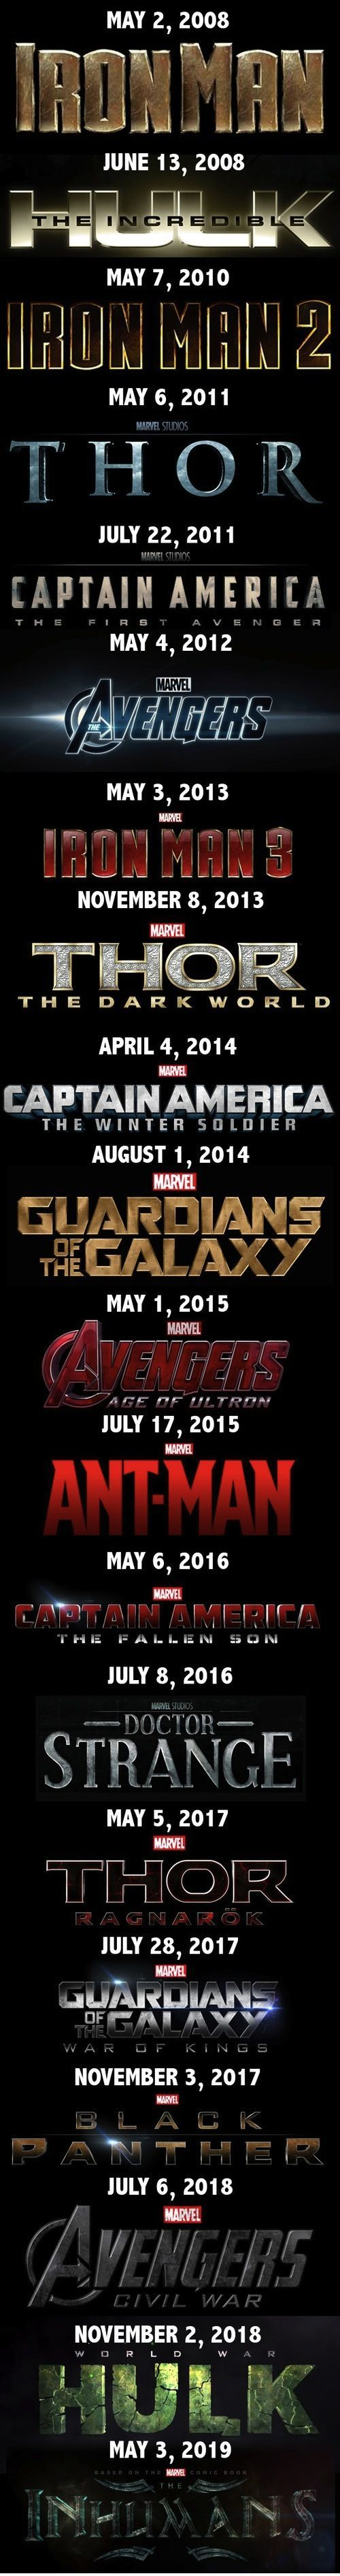 All Marvel Movies. OMG A NEW GUARDIANS OF THE GALAXY YUSS!